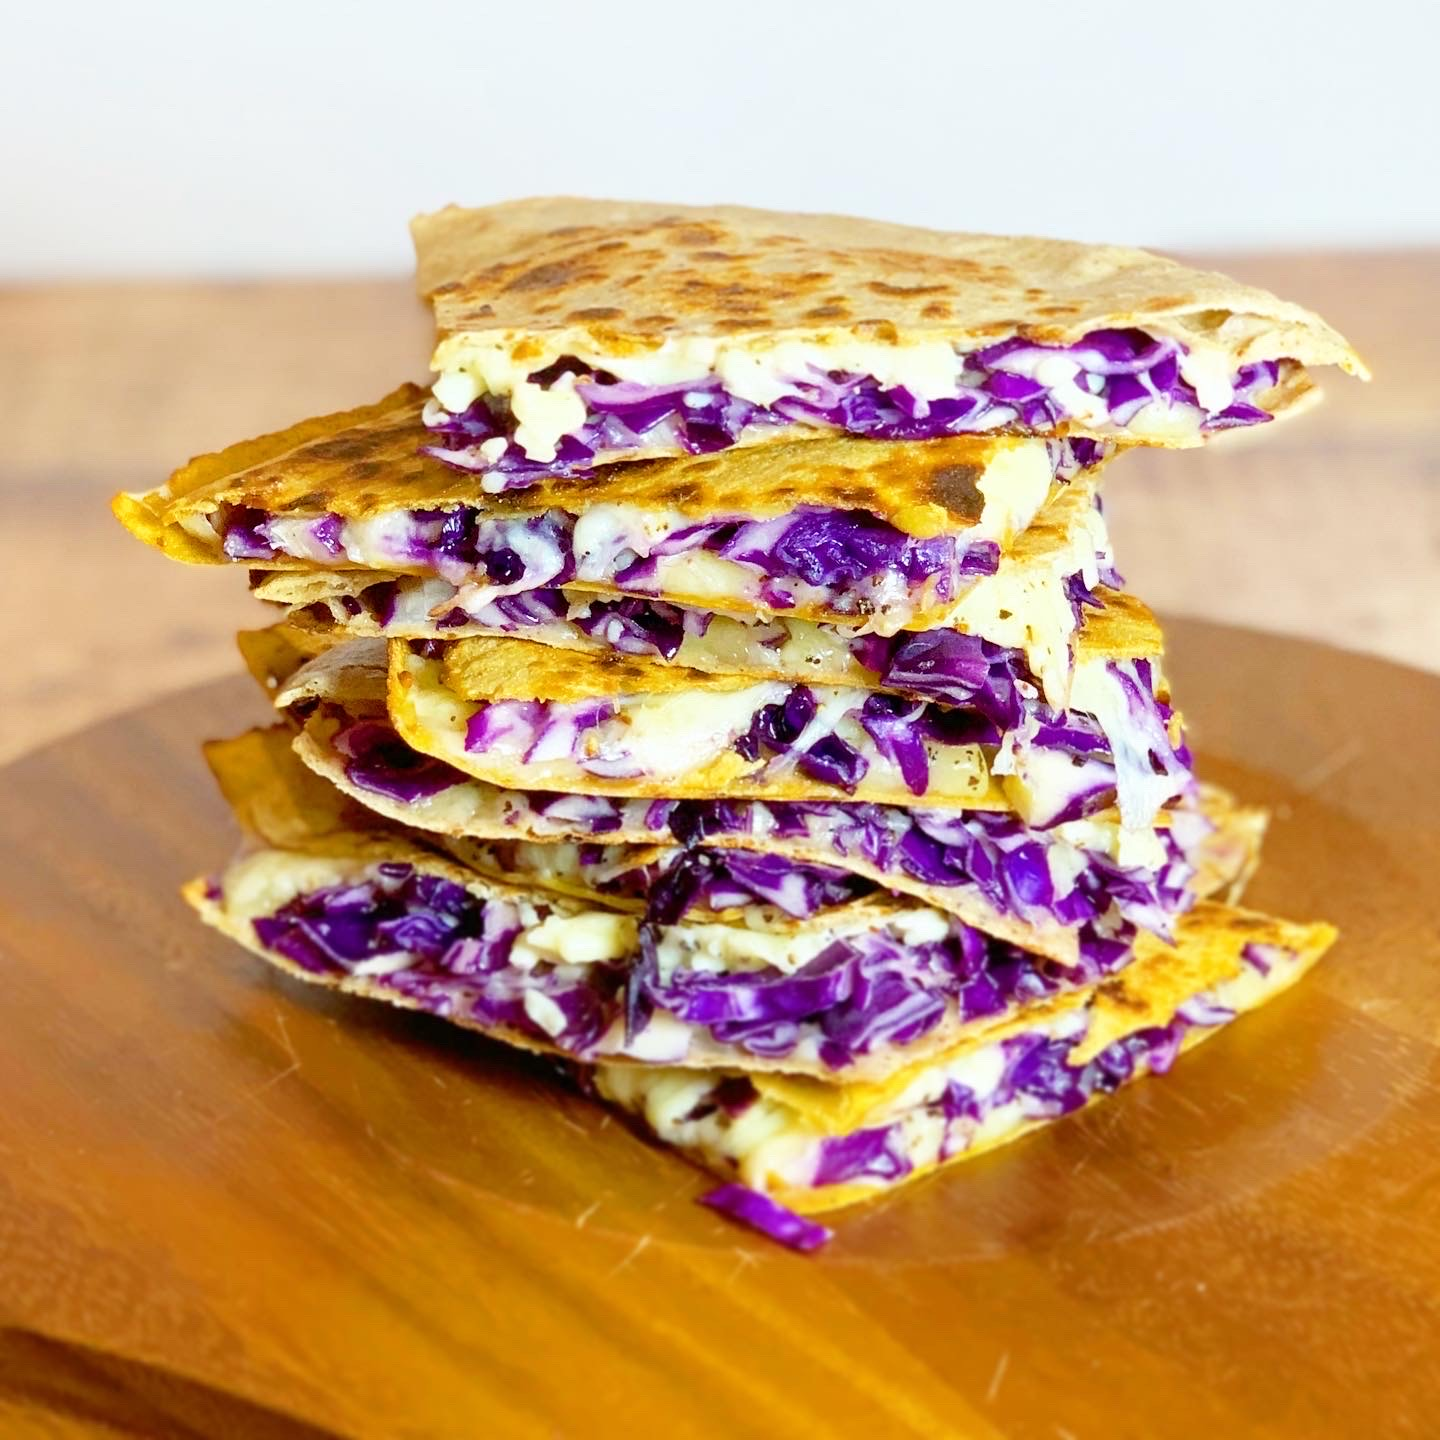 Purple Cabbage & Cheese Grilled Wrap Sandwich